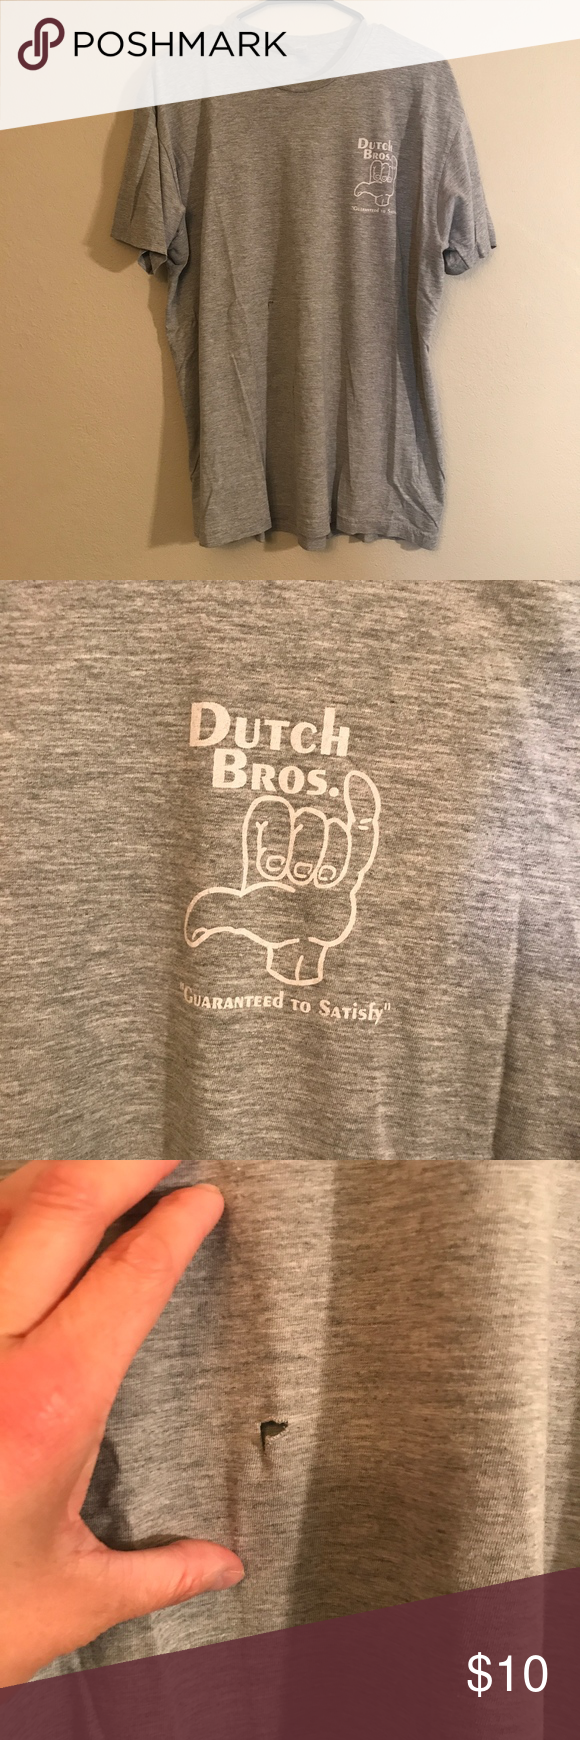 Grey Dutch Bros Guaranteed To Satisfy Tee Shirt is in great condition besides small flaw pictured in 3rd photo. Dutch Bros Tops Tees - Short Sleeve #dutchbros Grey Dutch Bros Guaranteed To Satisfy Tee Shirt is in great condition besides small flaw pictured in 3rd photo. Dutch Bros Tops Tees - Short Sleeve #dutchbros